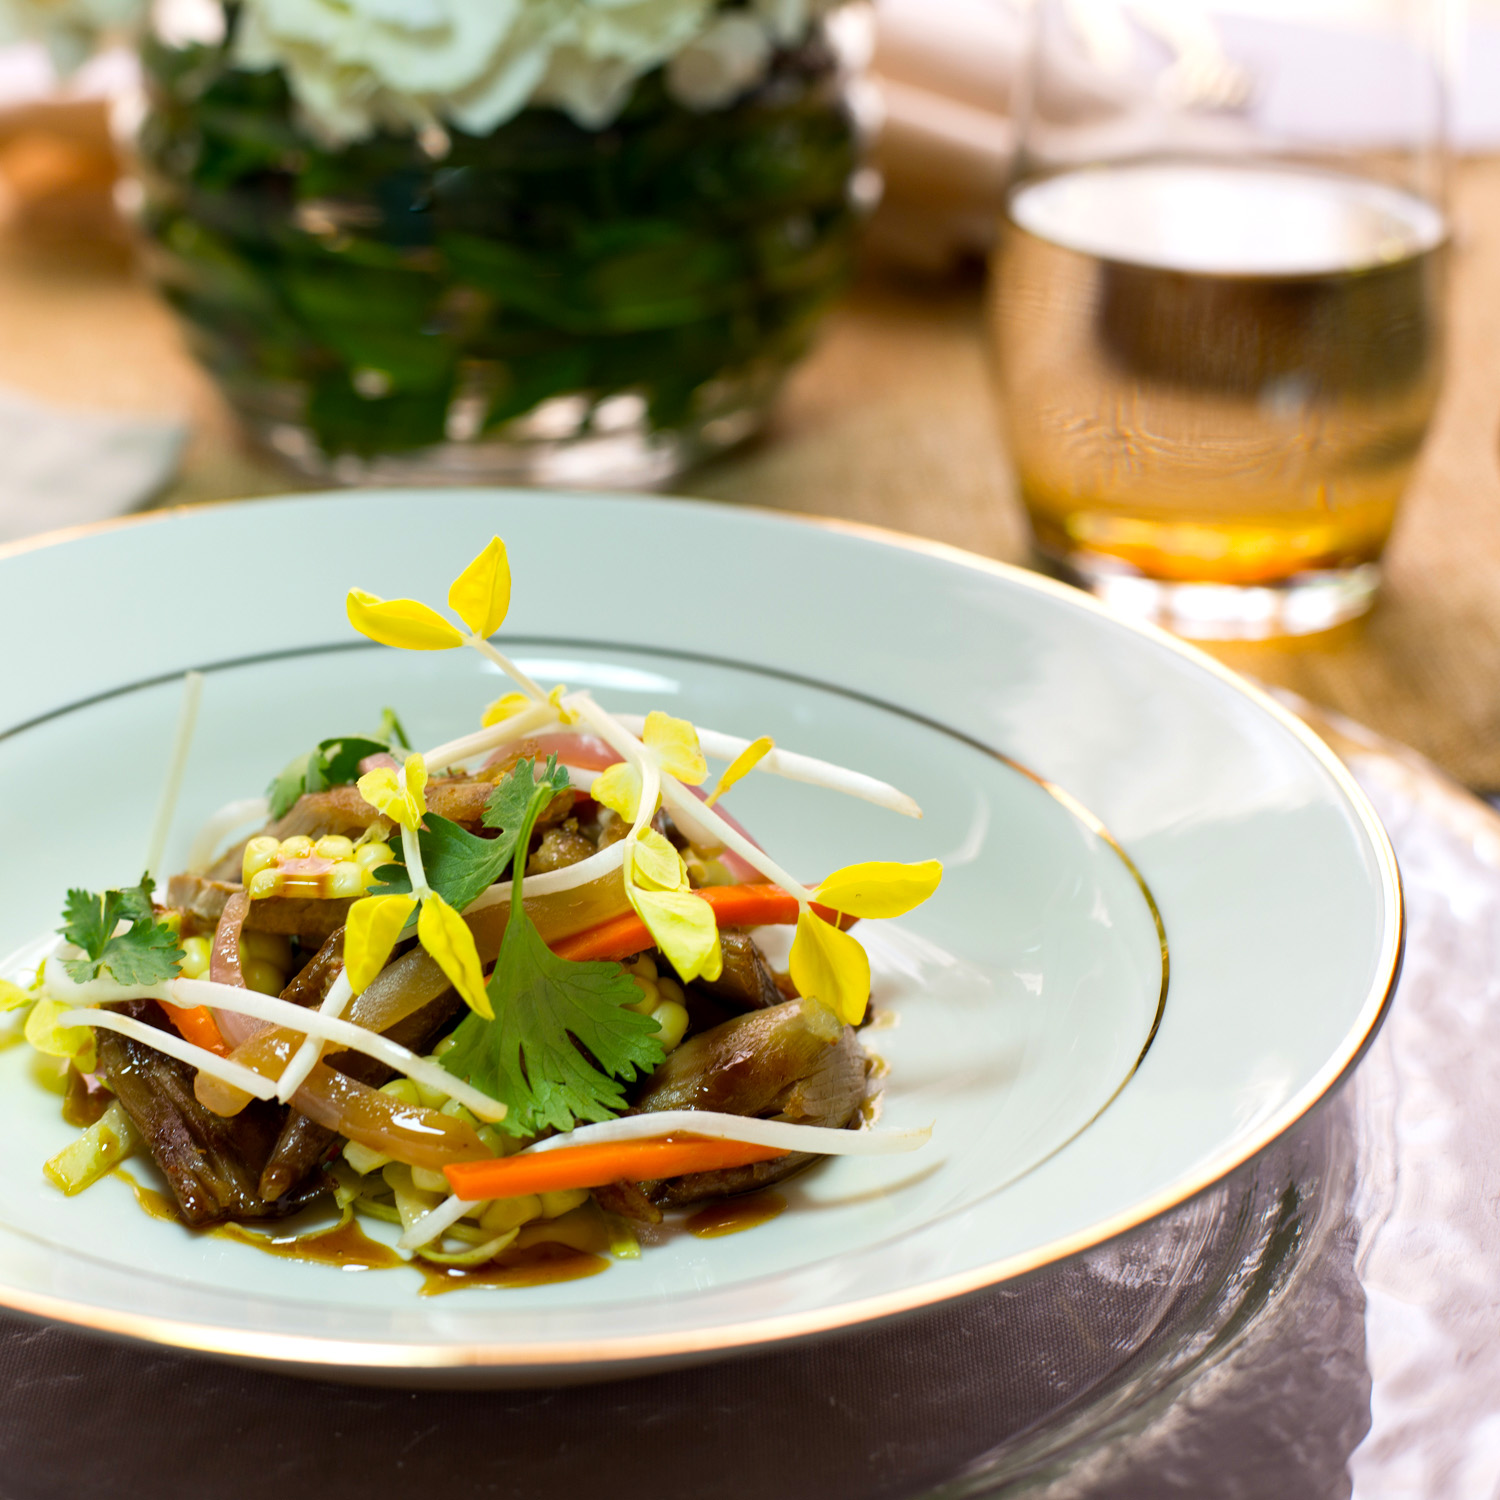 pea shoot w bell pepper and duck salad 2.jpg